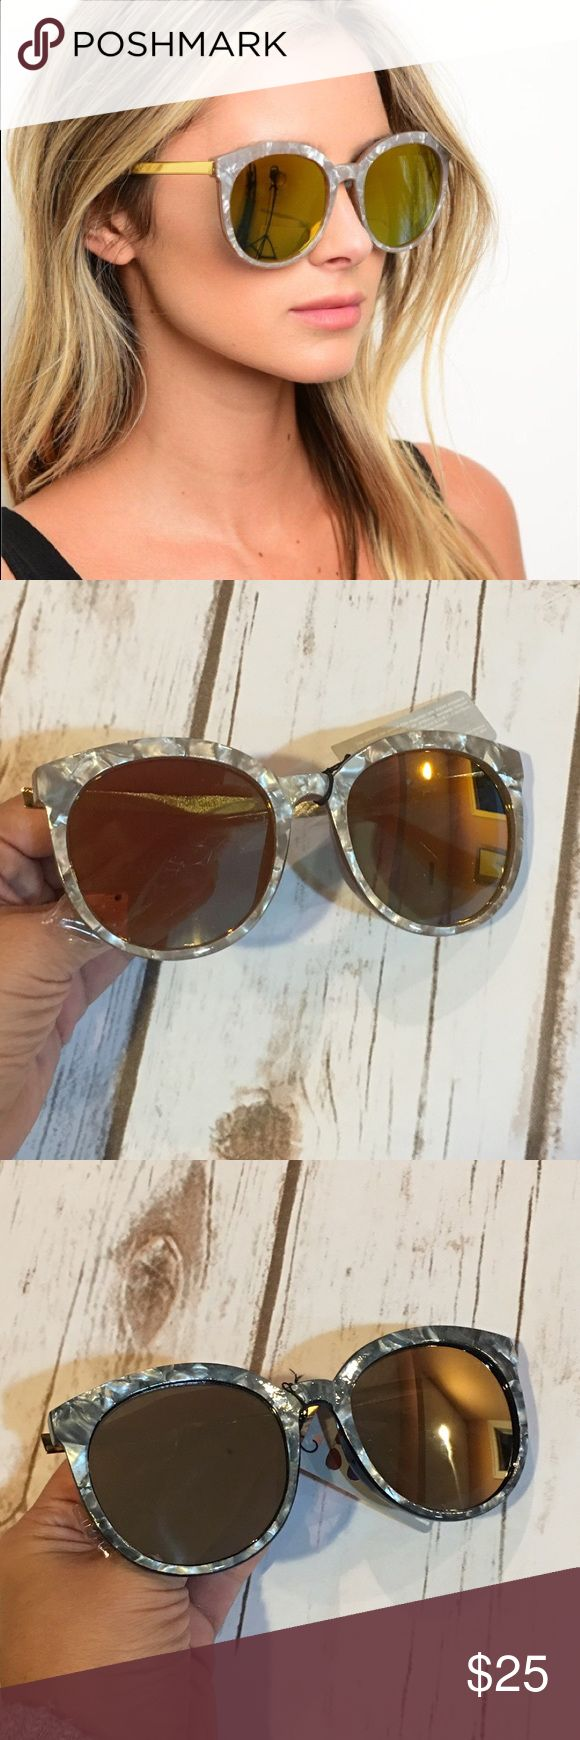 Marble Mirrored Sunglasses Brand new mirrored marble sunglasses. Available in 2 colors light gray as shown in pic 2 and dark gray as shown in pic 3. Accessories Sunglasses